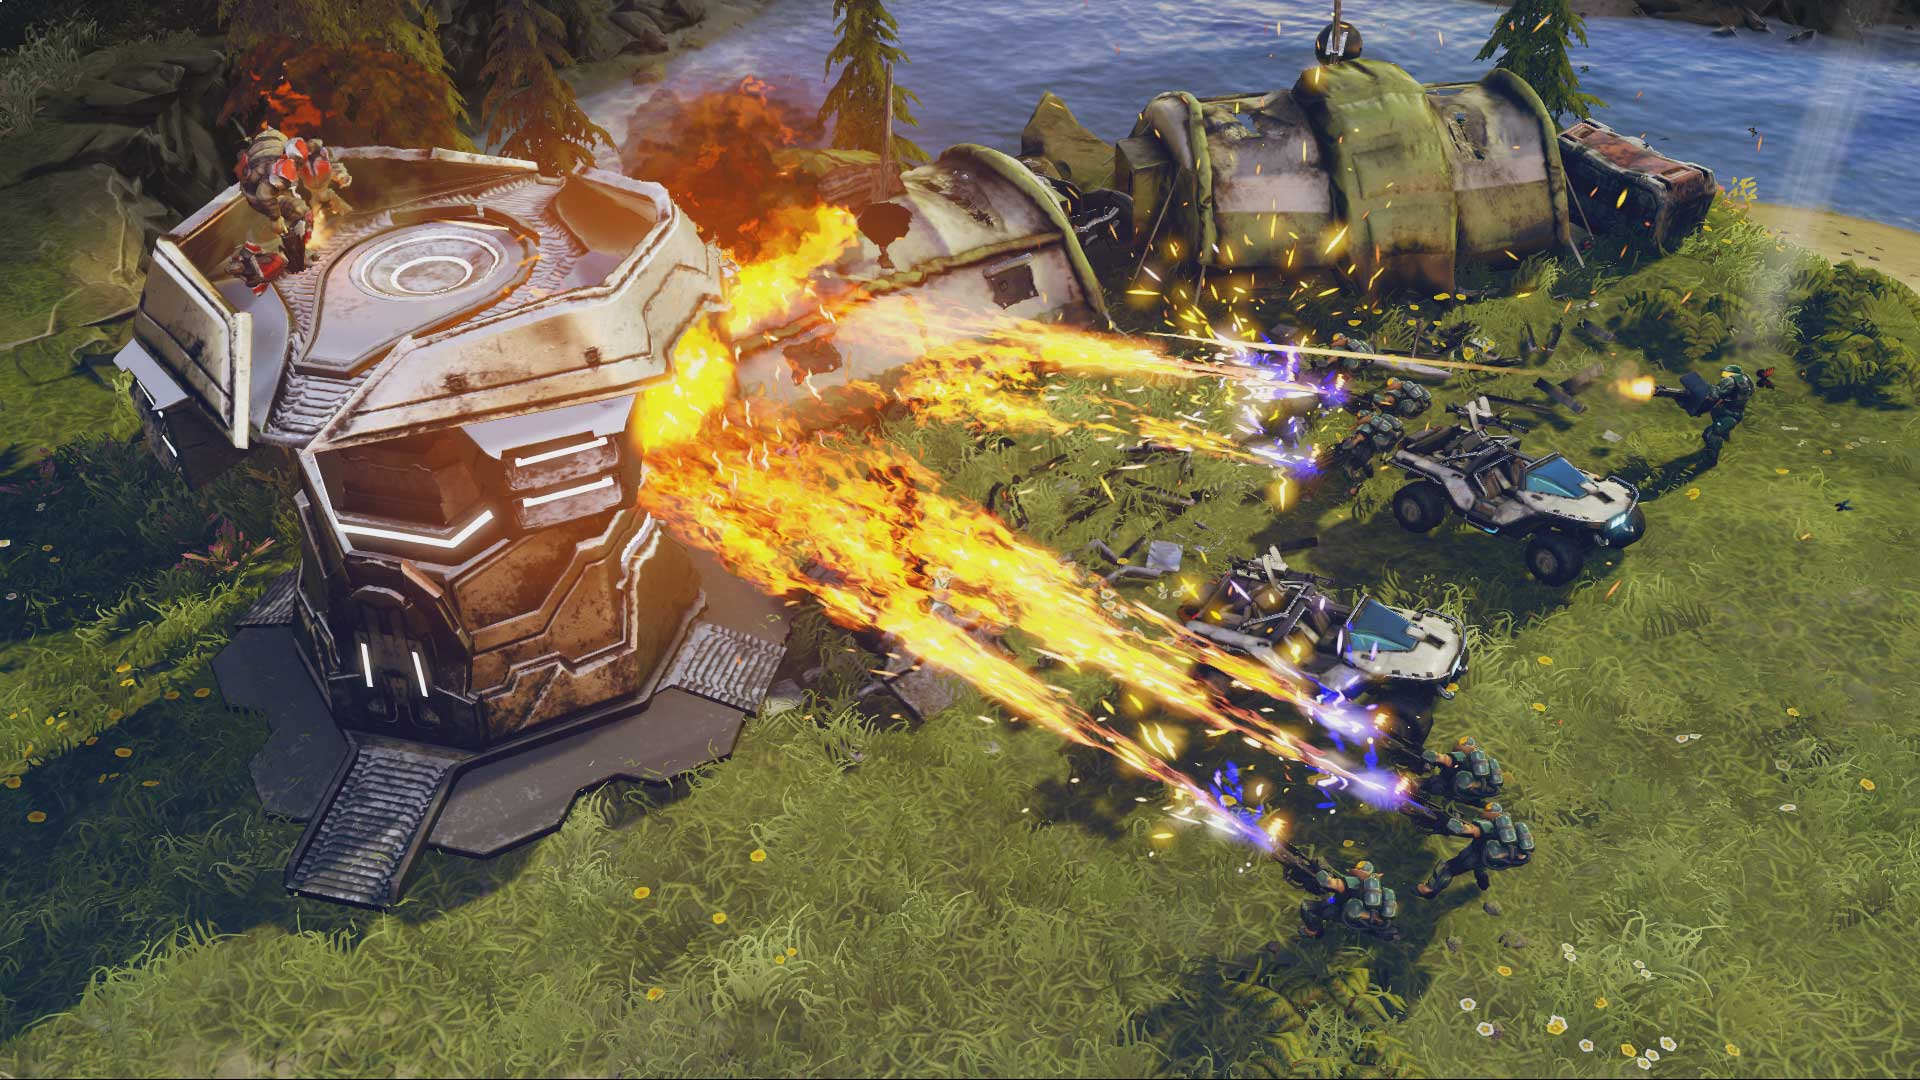 Shooting fire in Halo Wars 2